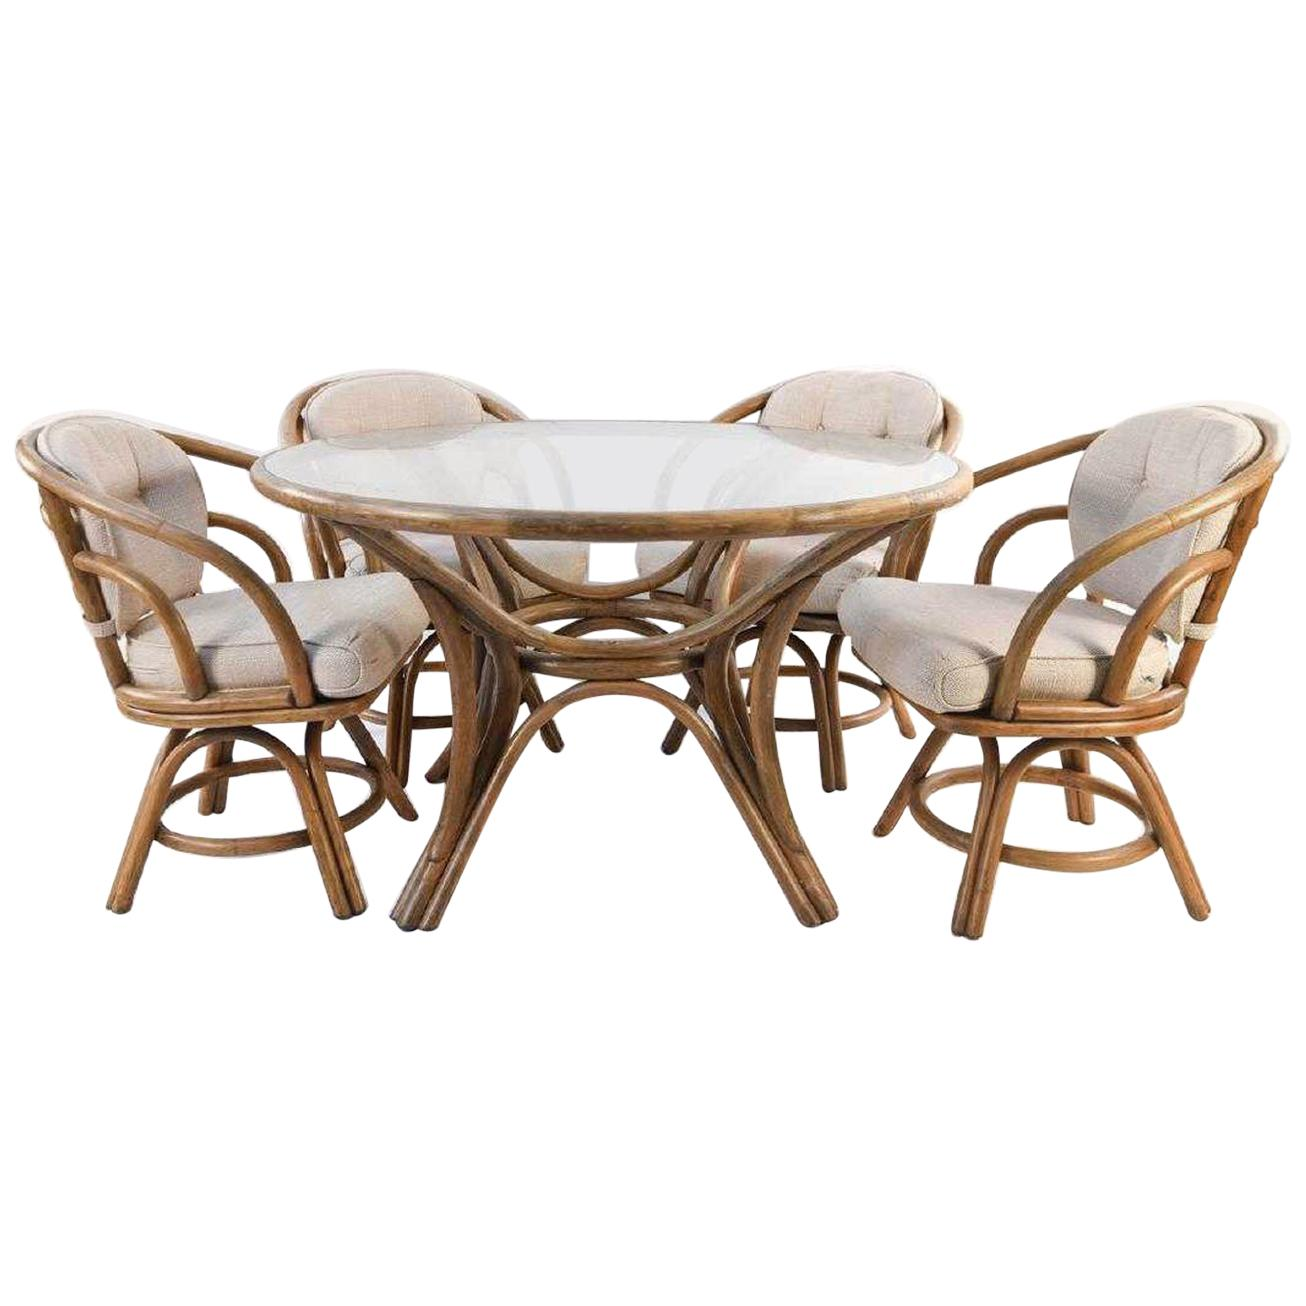 Outdoor Table And Chair Set Brown Jordan Bentwood Rattan Table And Chairs Set